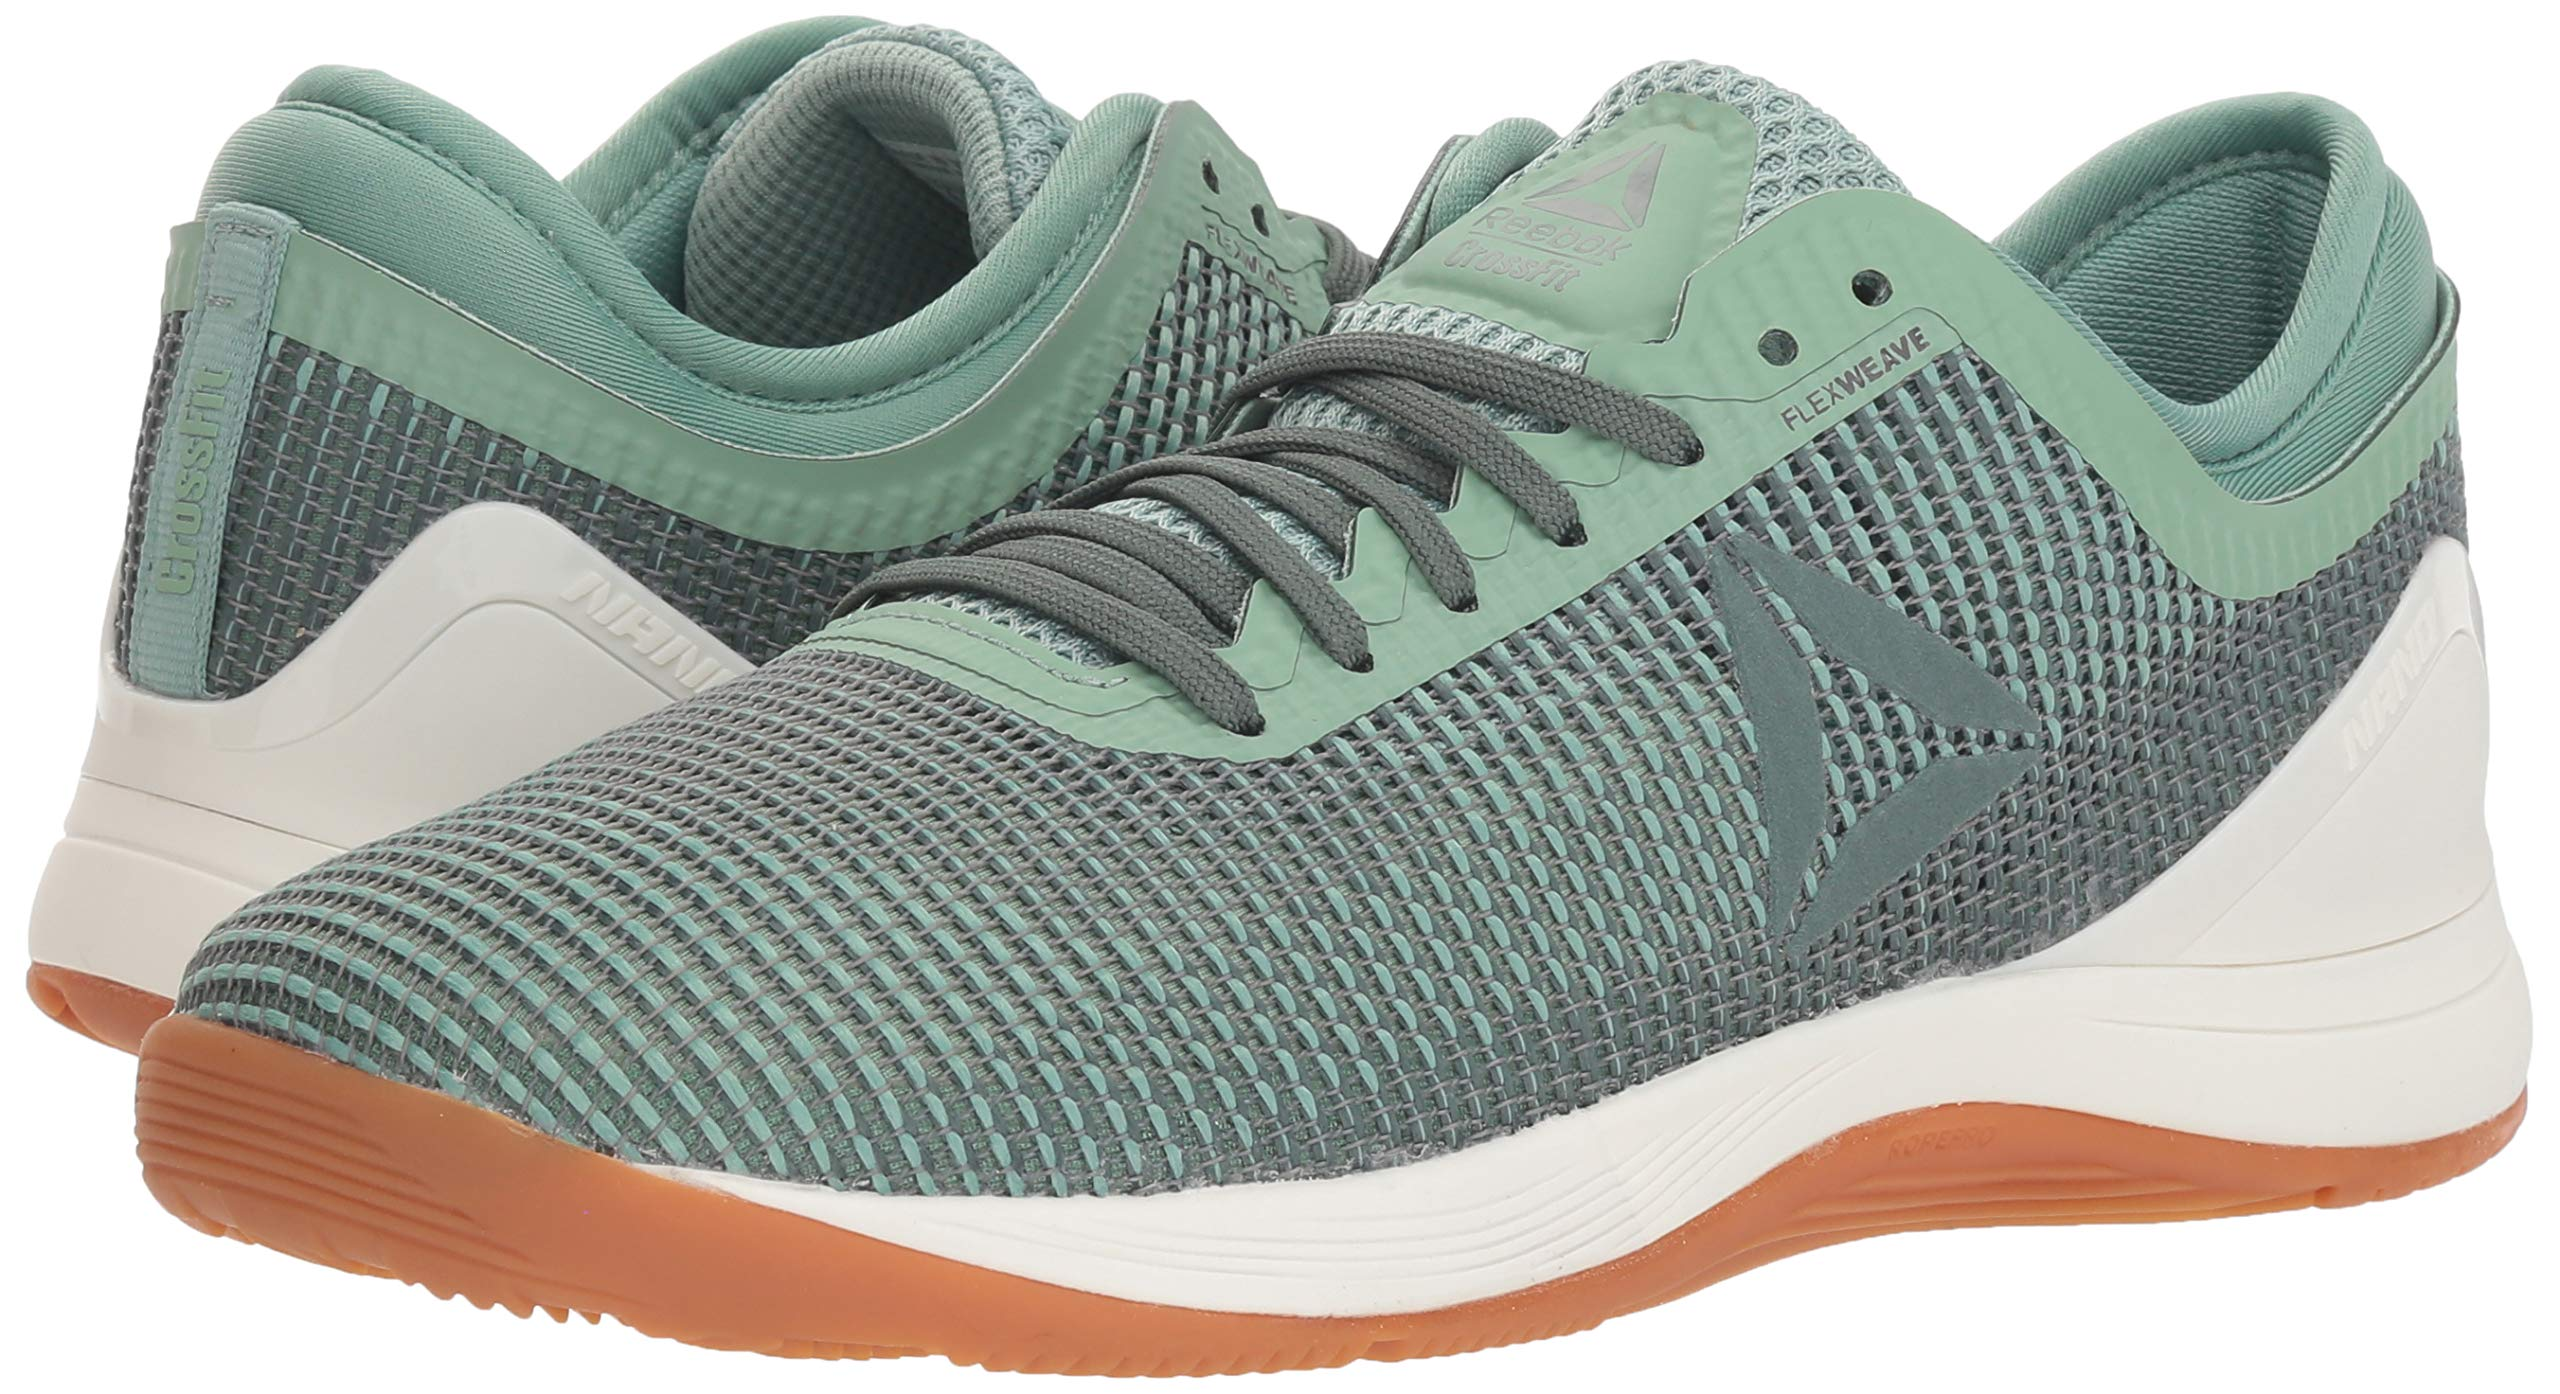 Reebok Women's CROSSFIT Nano 8.0 Flexweave Cross Trainer, industrial green/chalk grey, 5 M US by Reebok (Image #6)